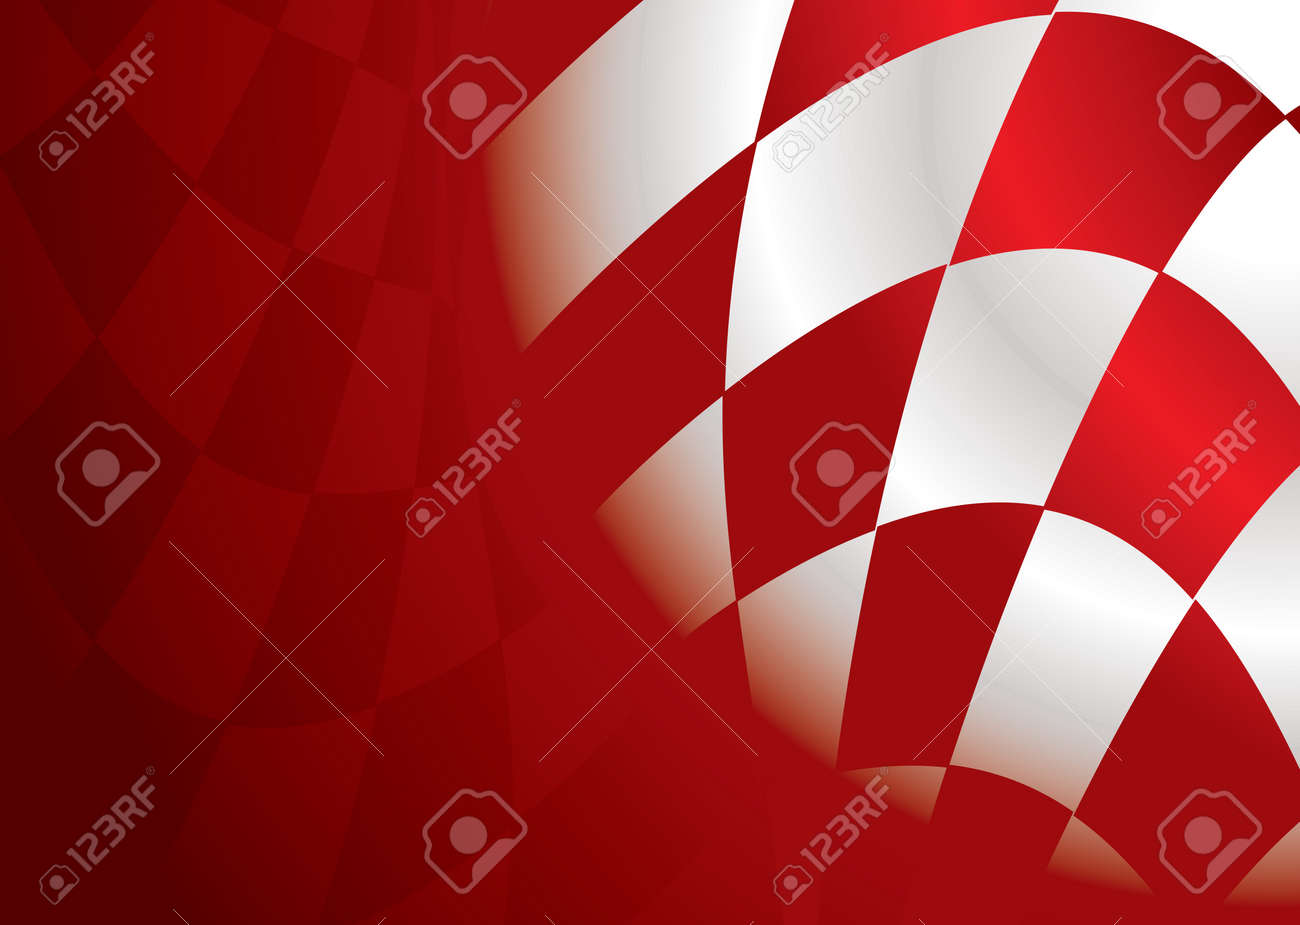 Decent Checkered Flag Background Checkered Flag Background Red Room To Add Text Stock Red Room To Add Text Add Background To Photo Gimp Add Background To Photoshop Layer photos Add Background To Photo